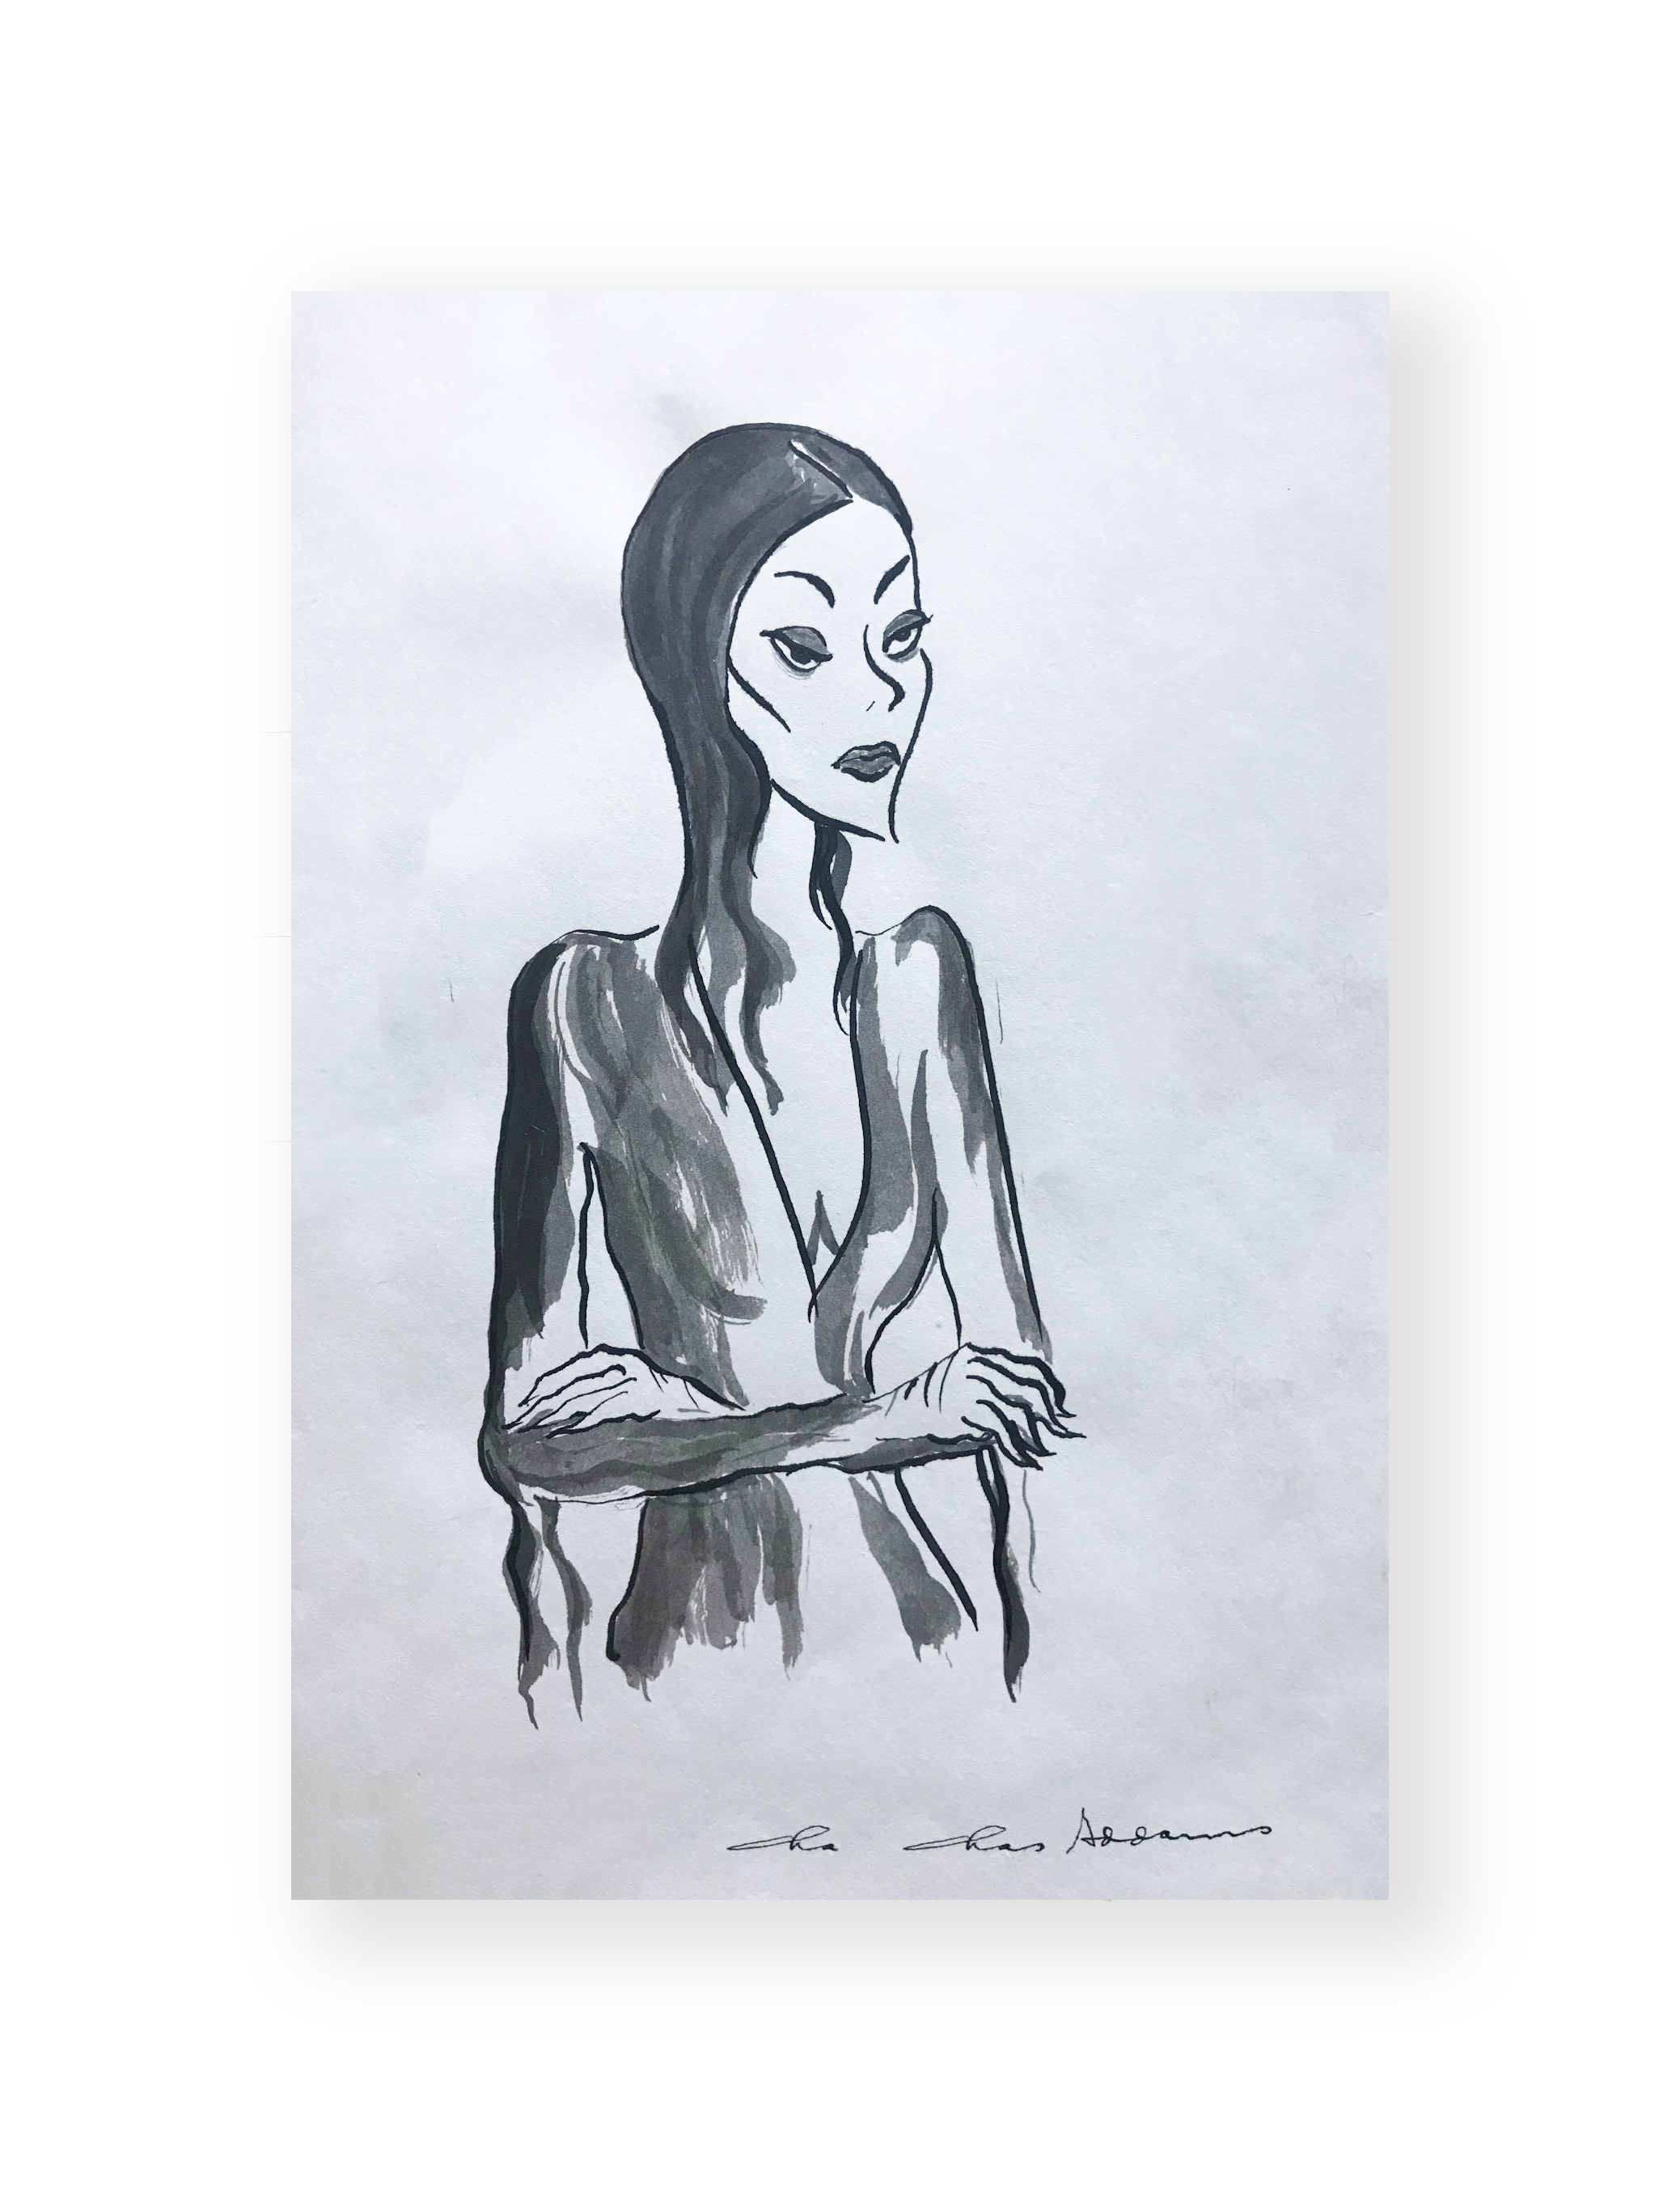 "Charles Addams  ""Morticia""  Addams Family  Original illustration  Ink and black wash on paper  10 x 7 inches  Circa 1970's  Provenance Edward Alanis family collection"